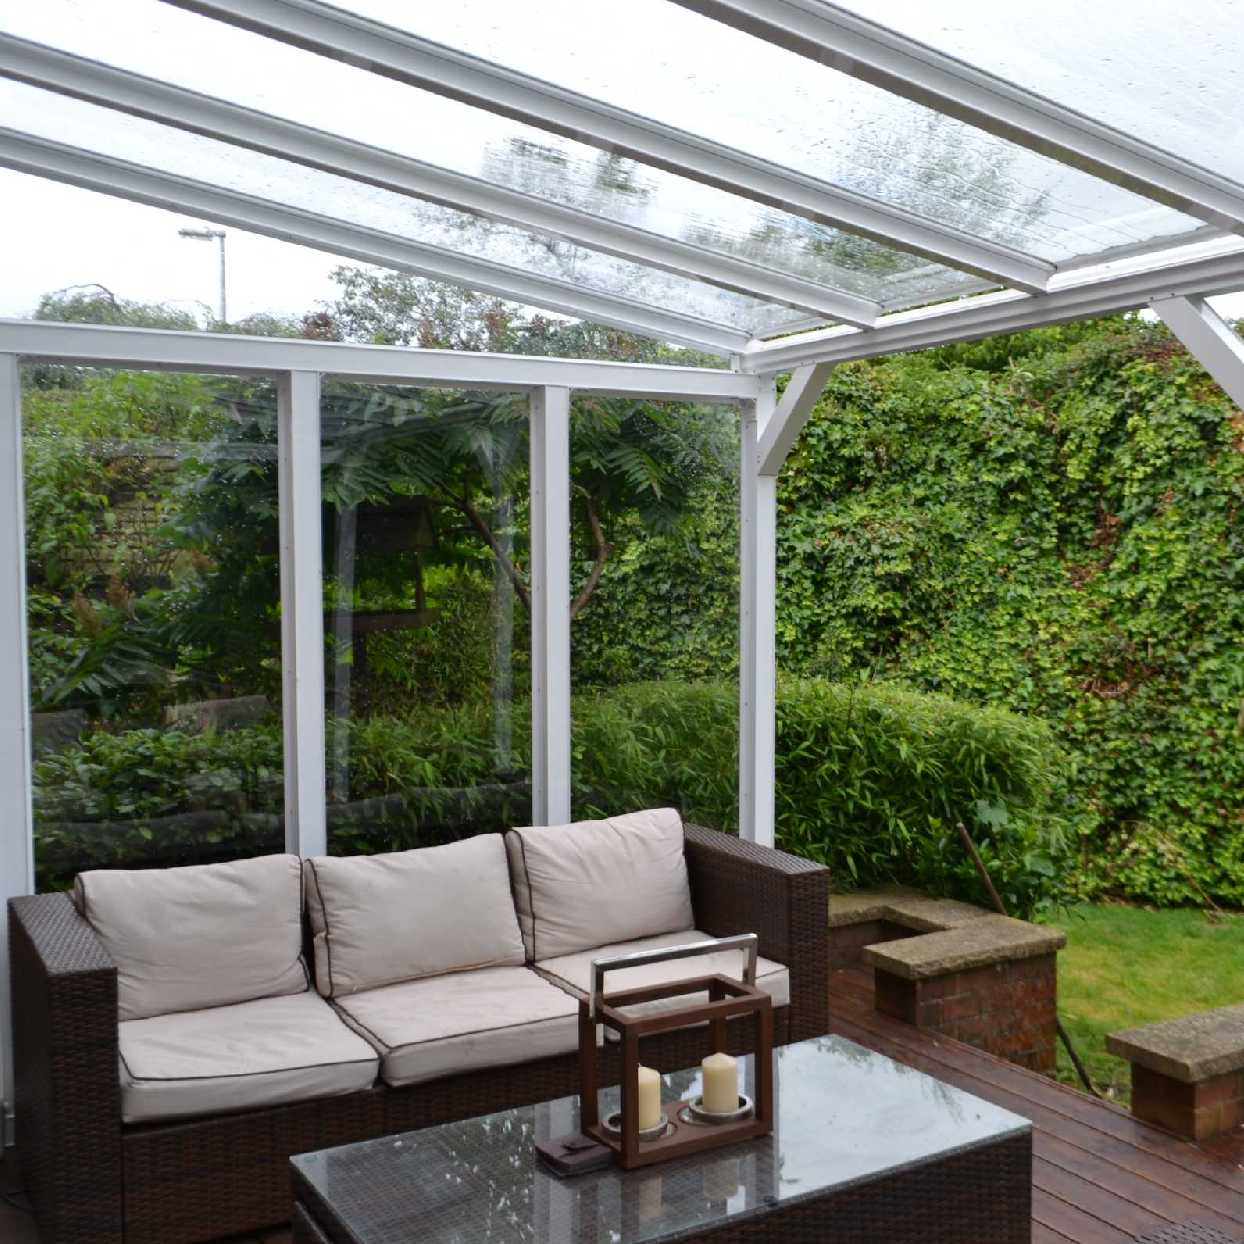 Great selection of Omega Smart White Lean-To Canopy with 16mm Polycarbonate Glazing - 8.0m (W) x 4.5m (P), (4) Supporting Posts